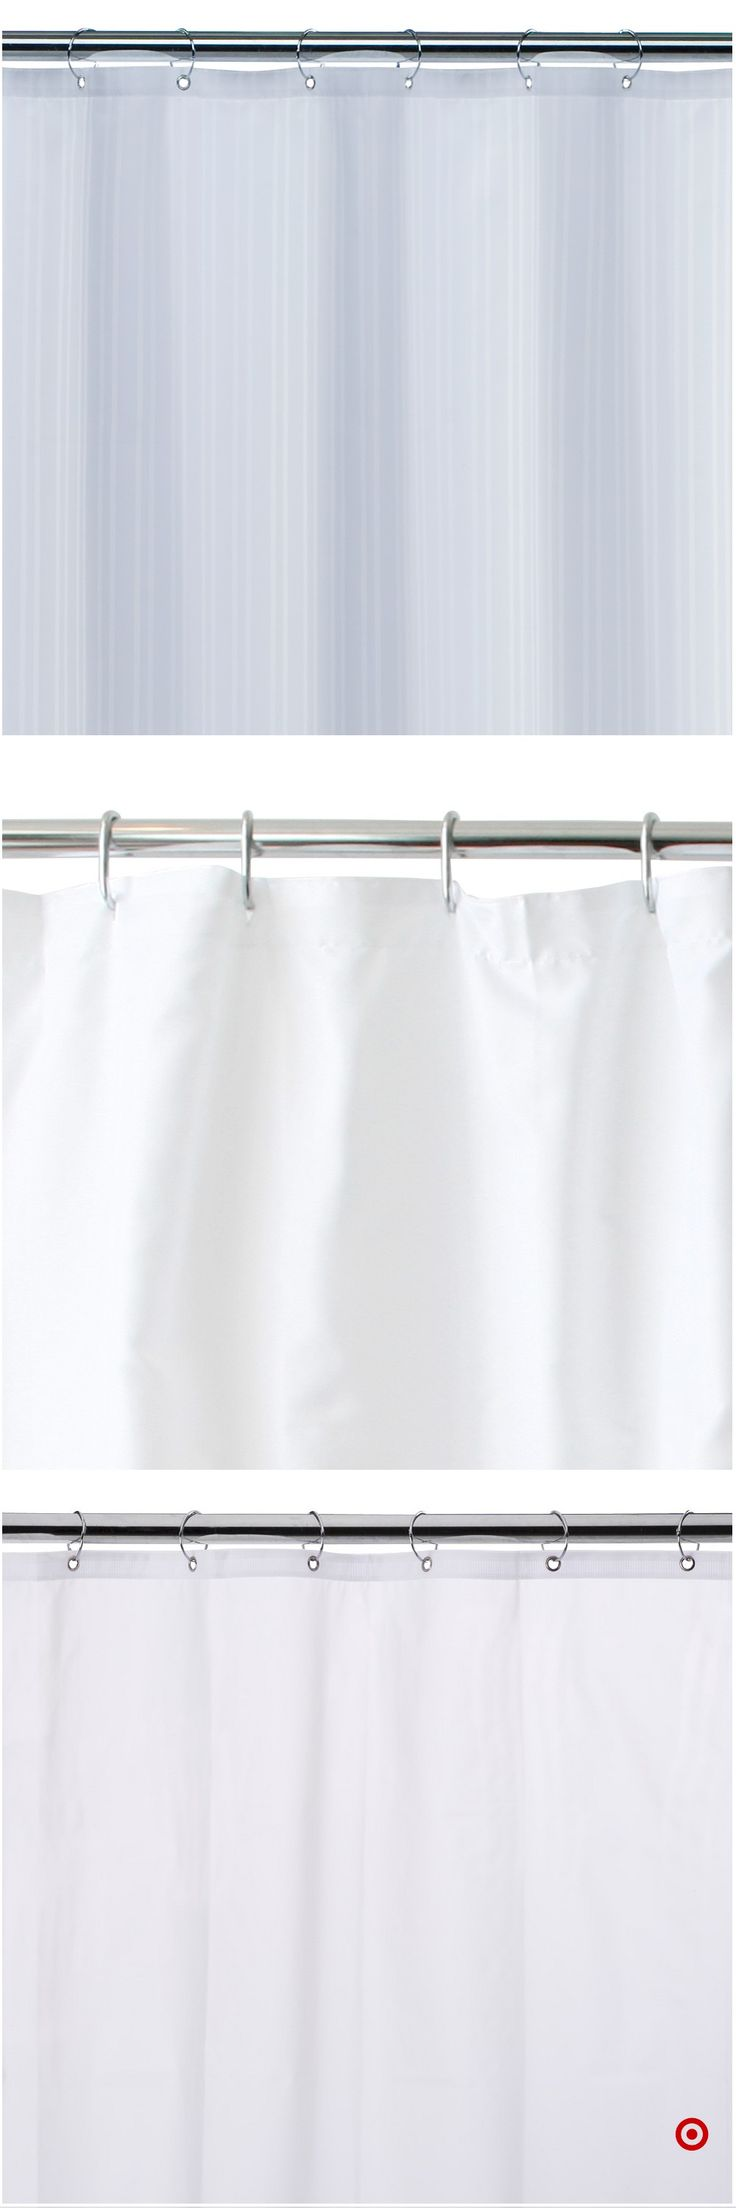 Shop Target for shower liner you will love at great low prices. Free shipping on all orders or free same-day pick-up in store.